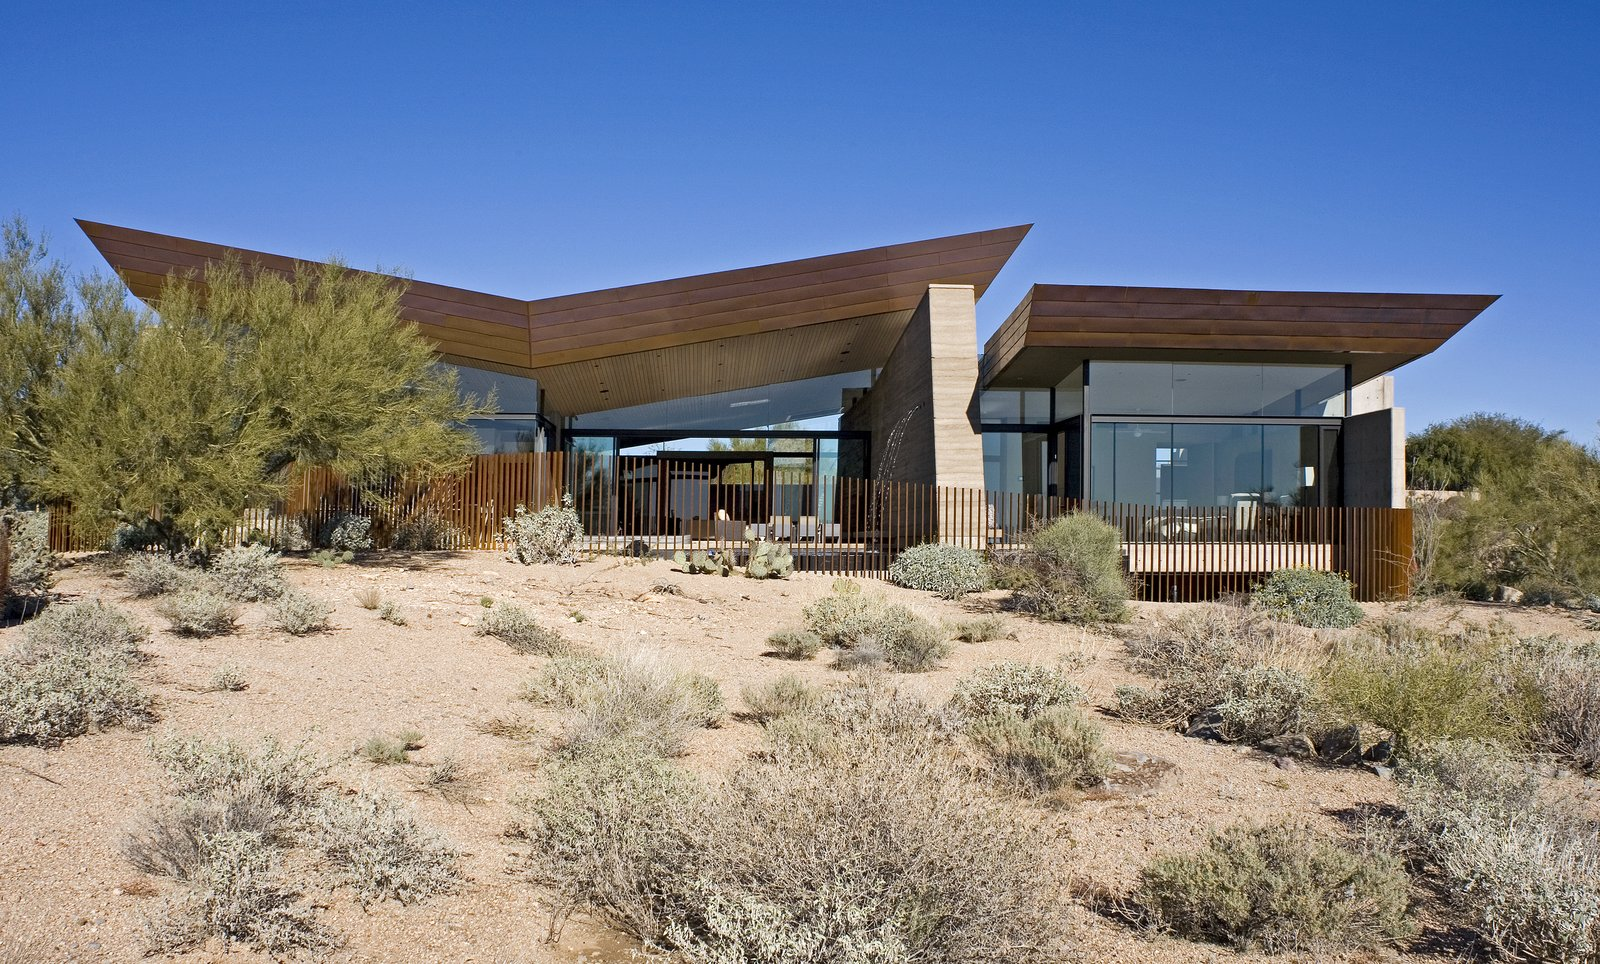 Exterior, Metal Roof Material, House Building Type, Metal Siding Material, and Concrete Siding Material  Desert Wing